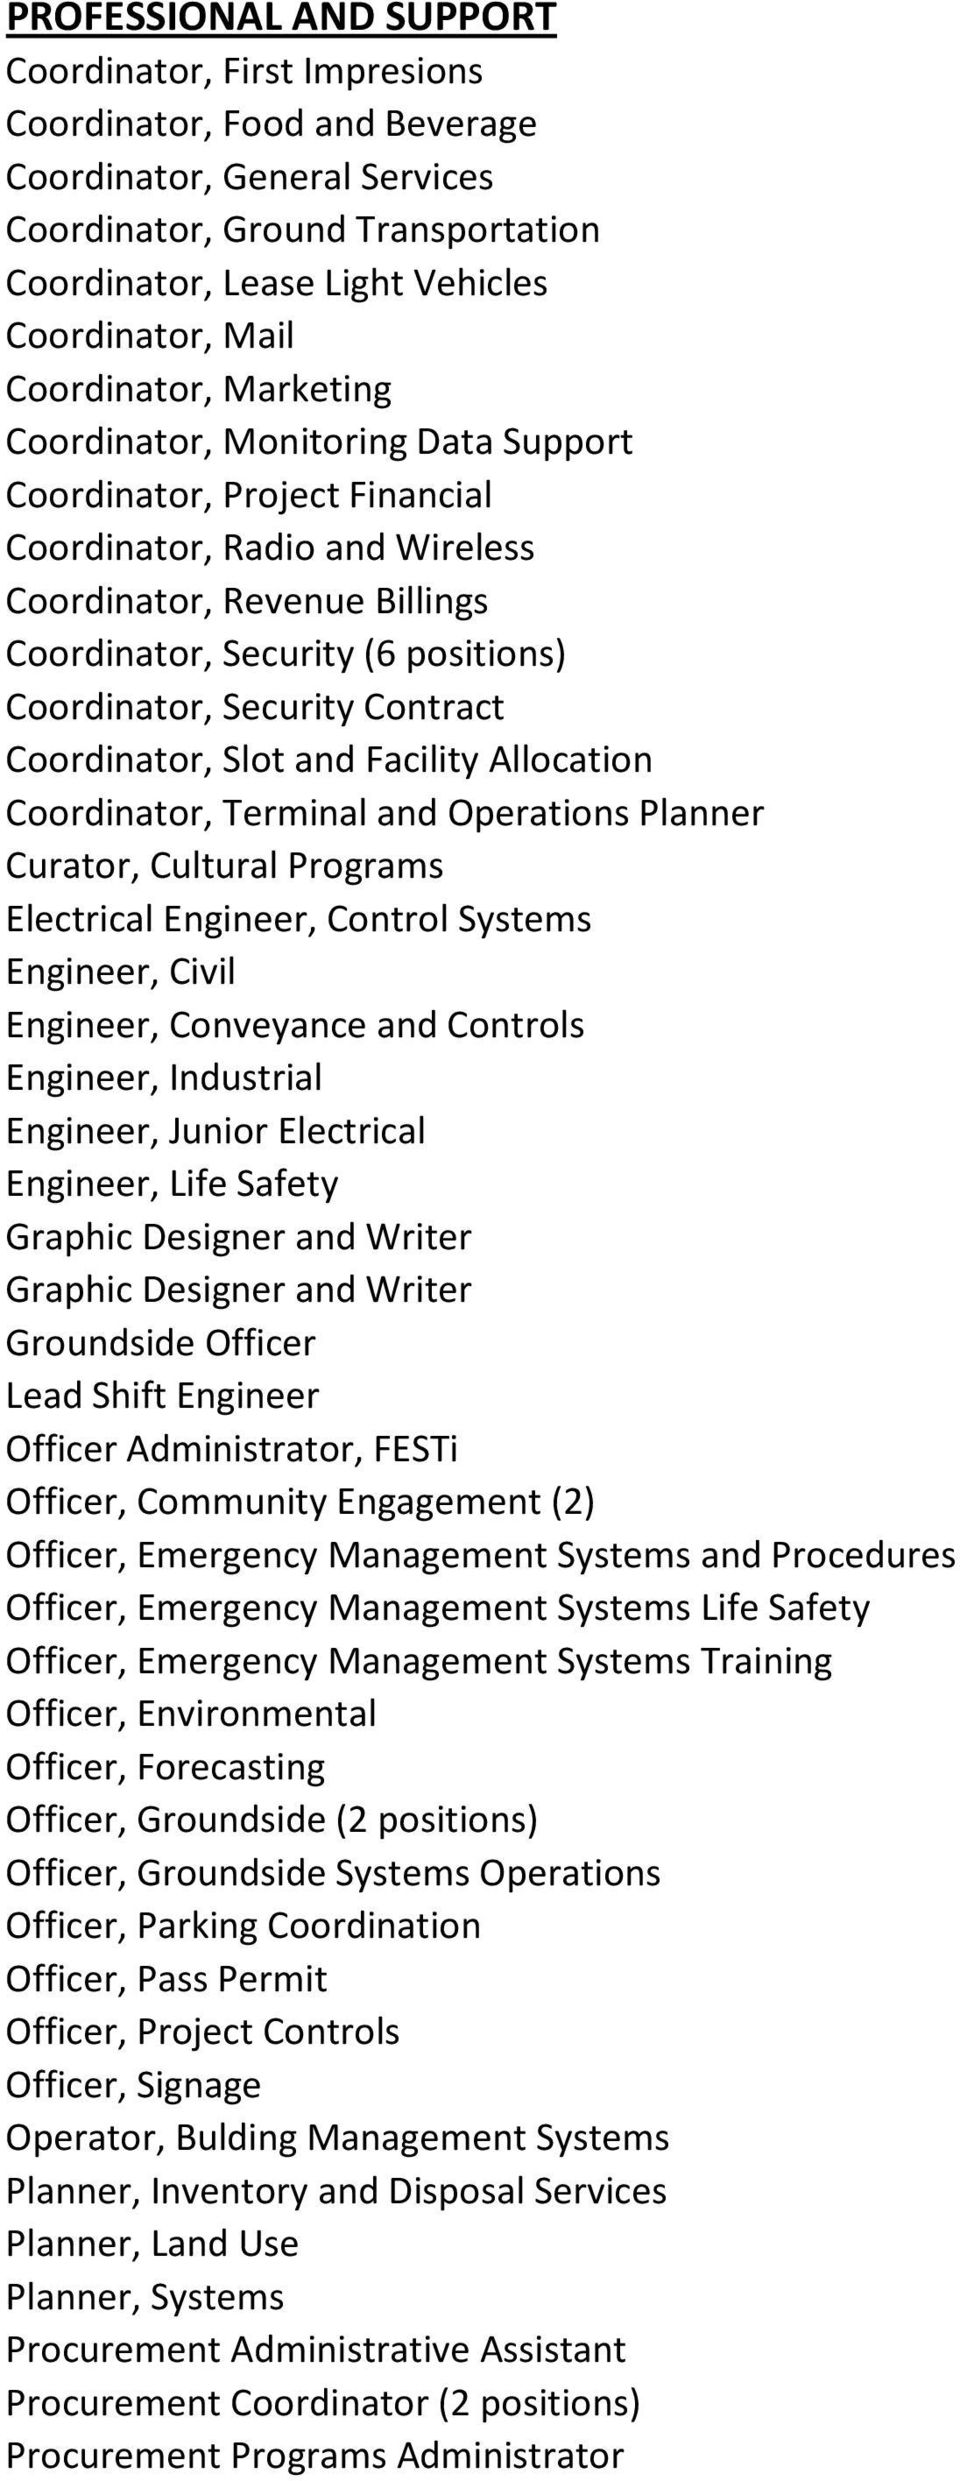 Coordinator, Security Contract Coordinator, Slot and Facility Allocation Coordinator, Terminal and Operations Planner Curator, Cultural Programs Electrical Engineer, Control Systems Engineer, Civil